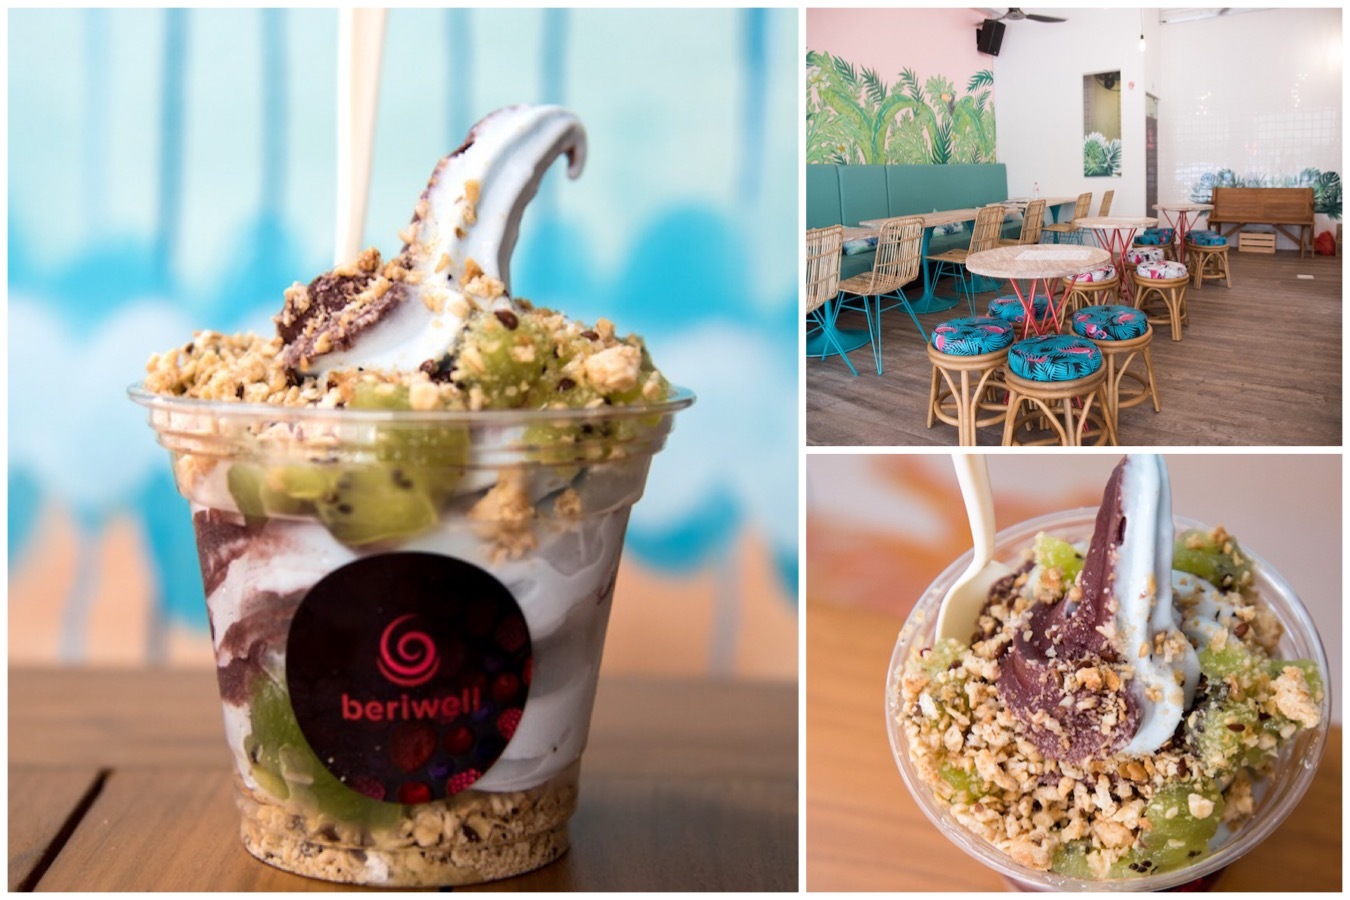 Beriwell - Singapore's First Acai Softserve At East Coast, Opens Till 11pm